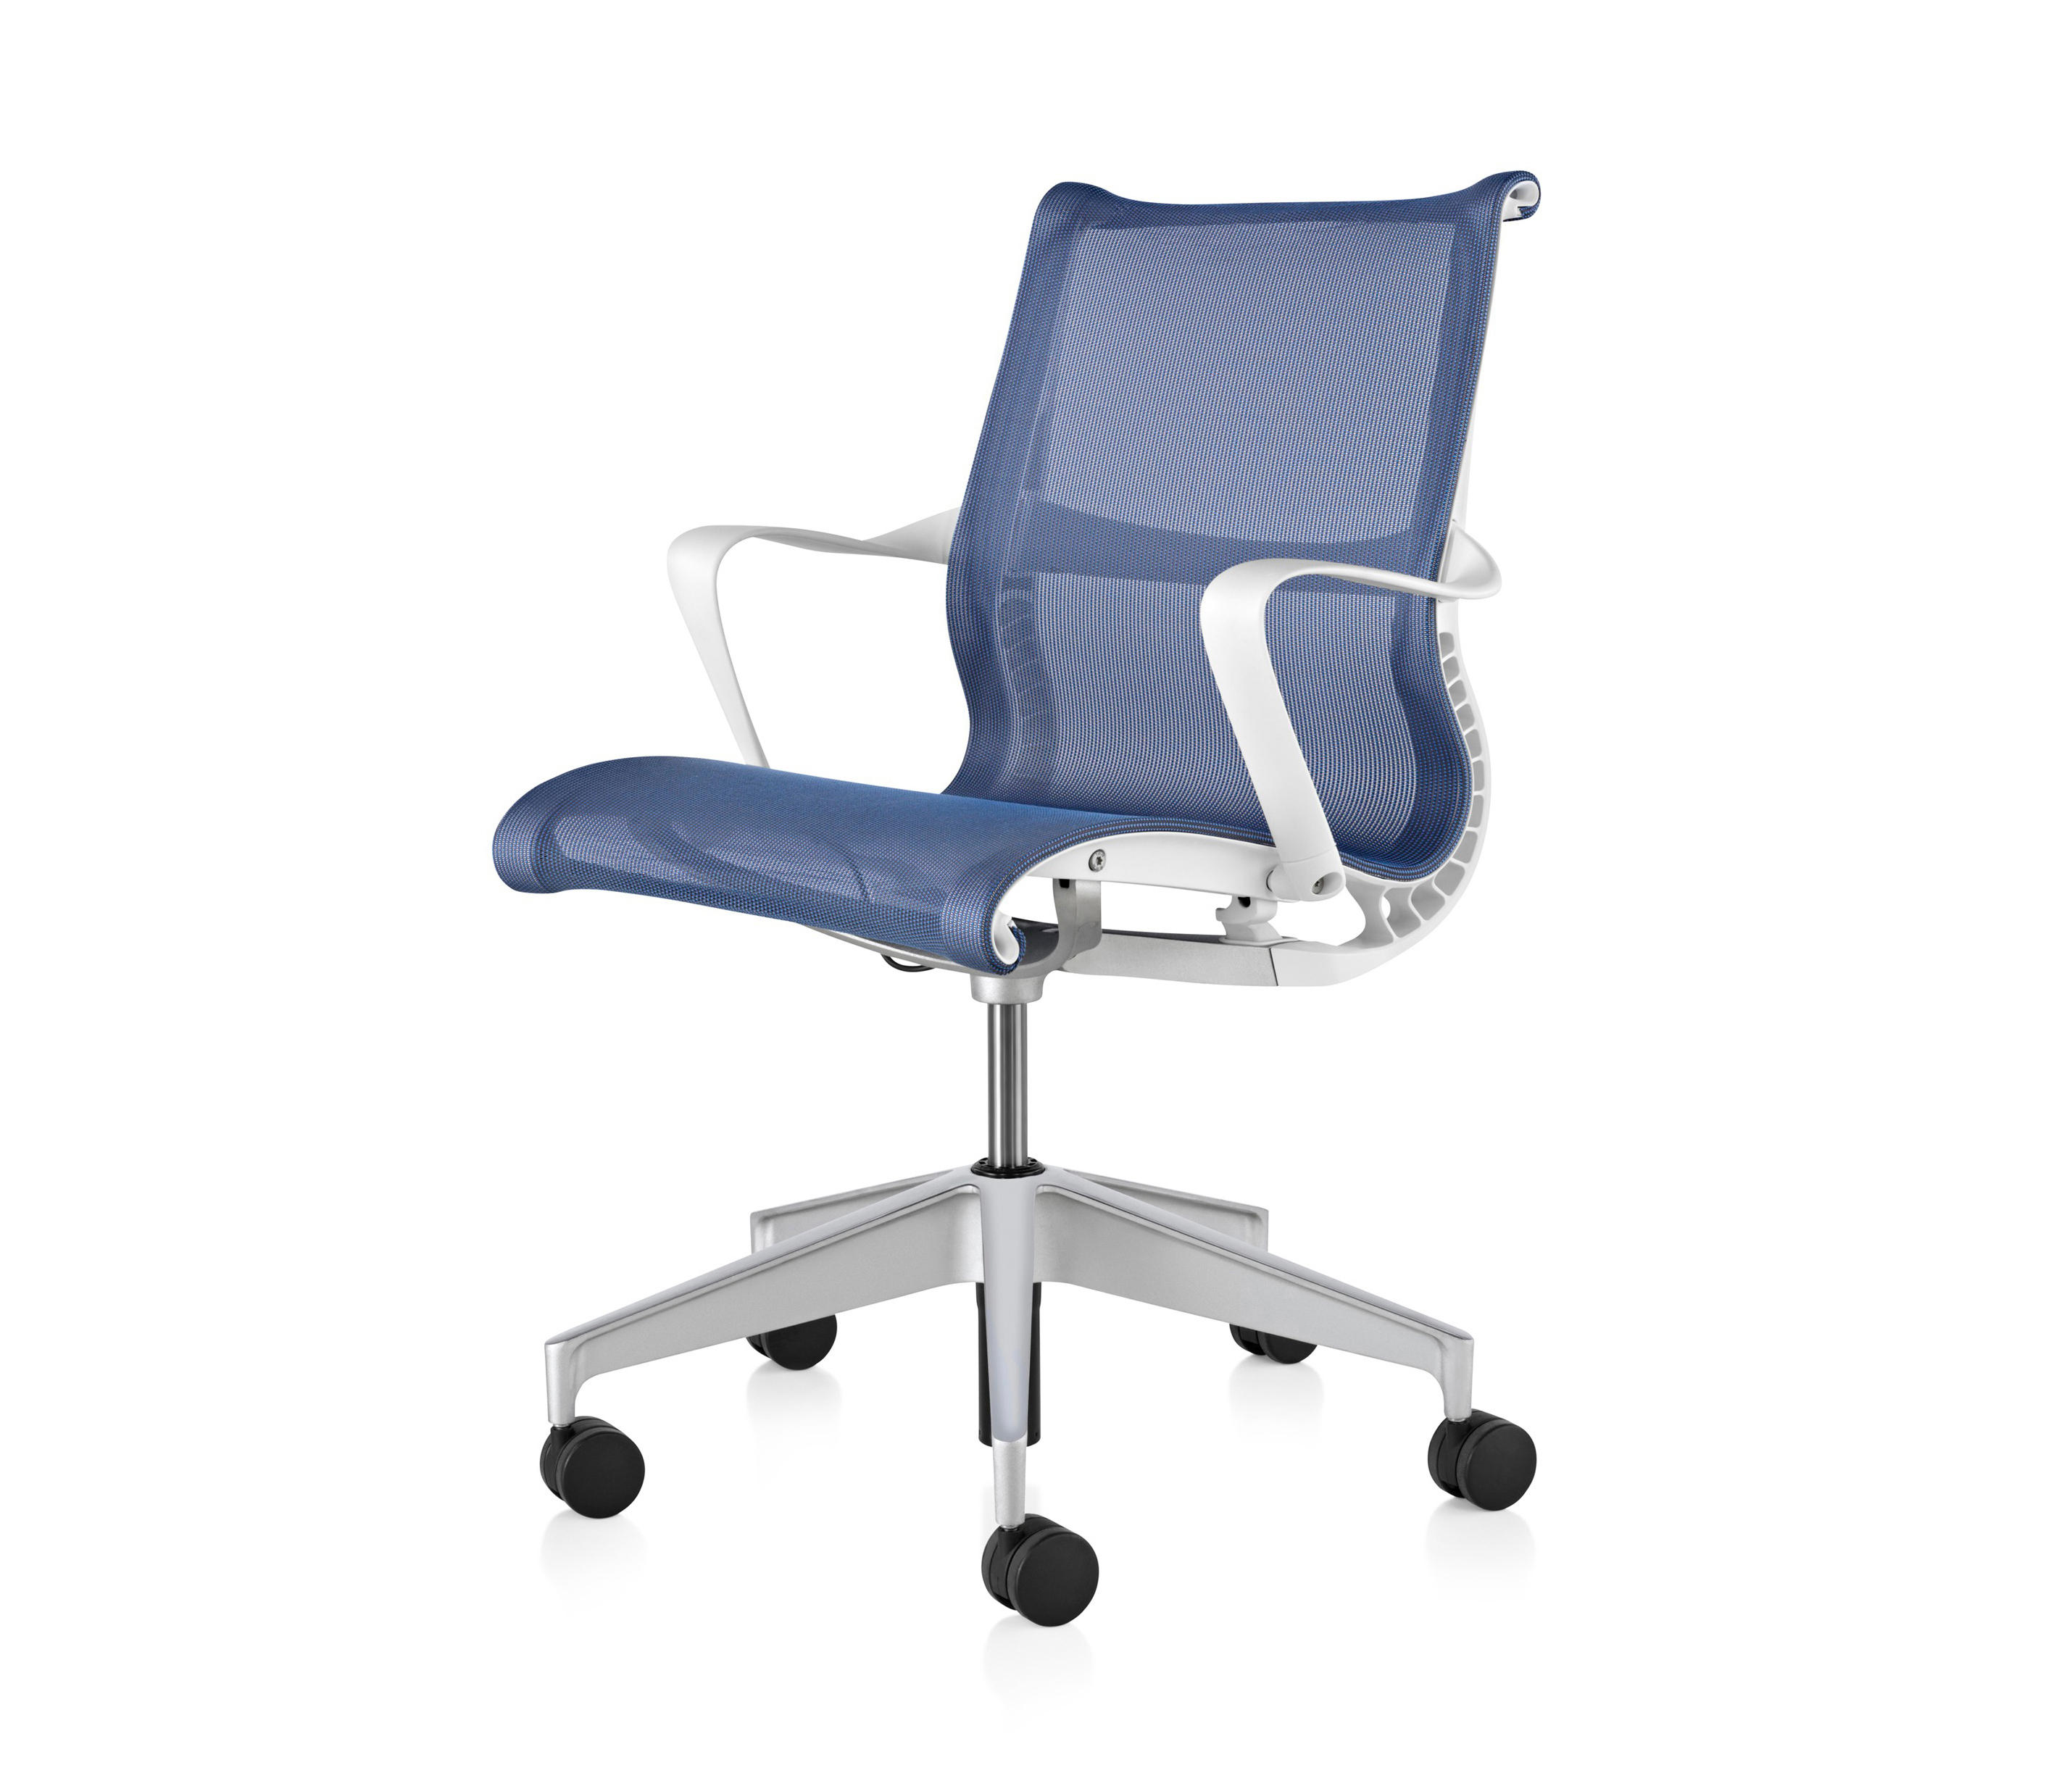 SETU CHAIR Task chairs from Herman Miller Architonic